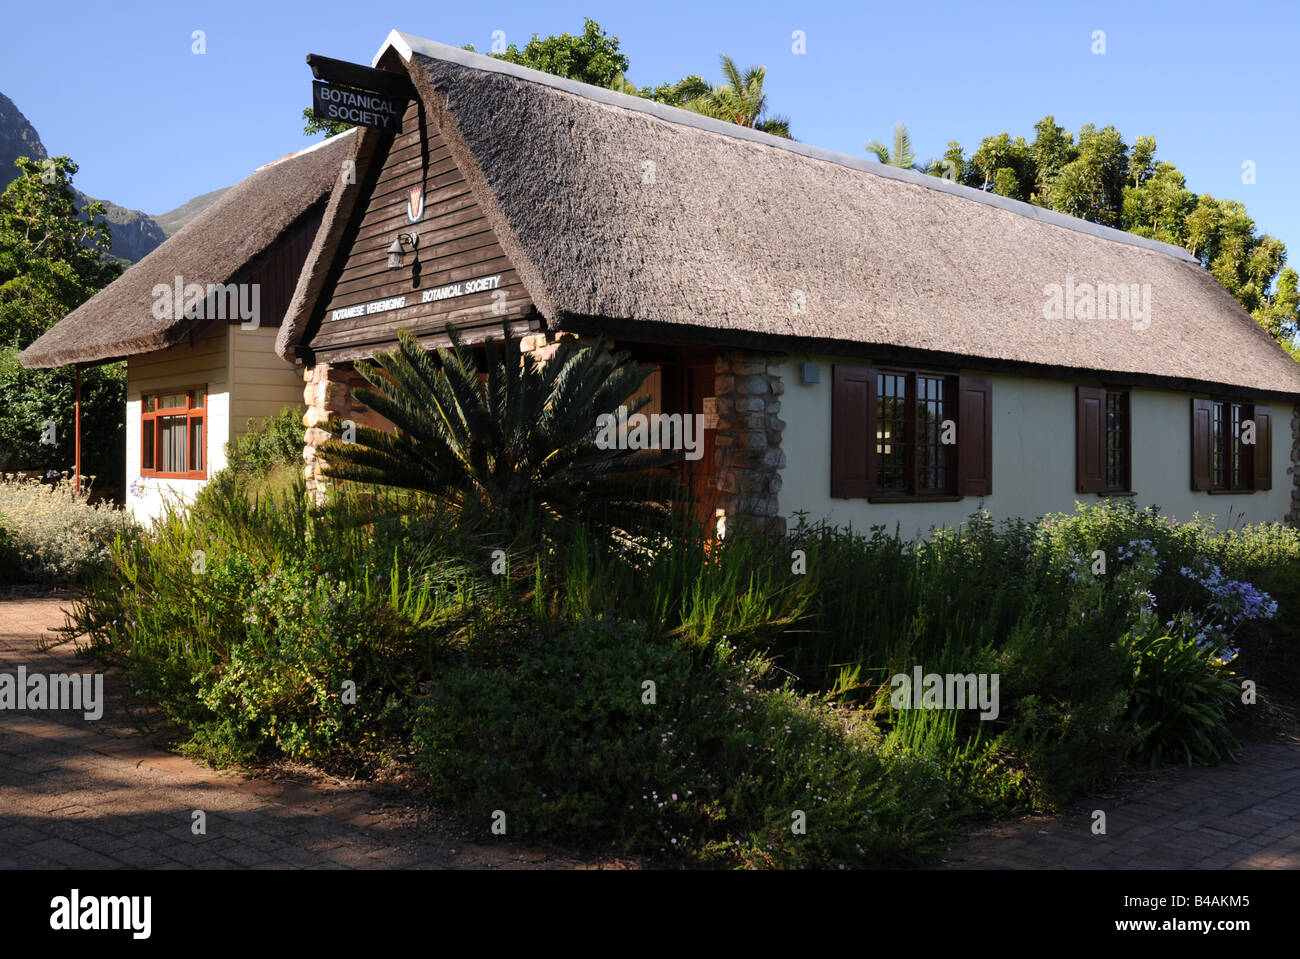 geography / travel, South Africa, Kapstadt, Kirstenbosch, Botanical Society, house in park, Botanic Garden, Additional - Stock Image